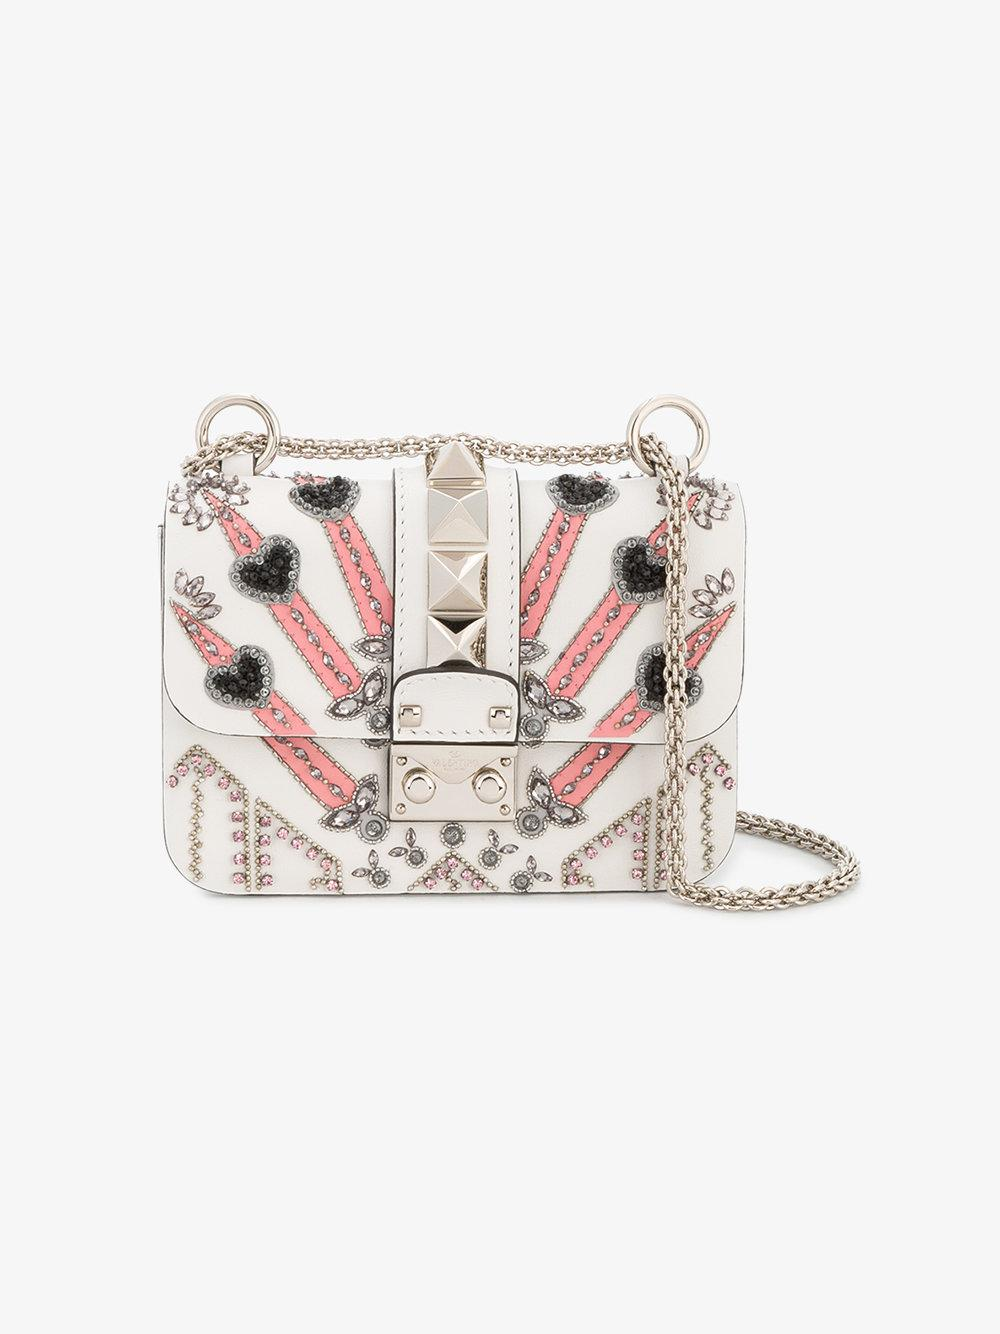 52c3f53b649 Valentino Garavani Loveblade Lock Shoulder Bag in White - Lyst